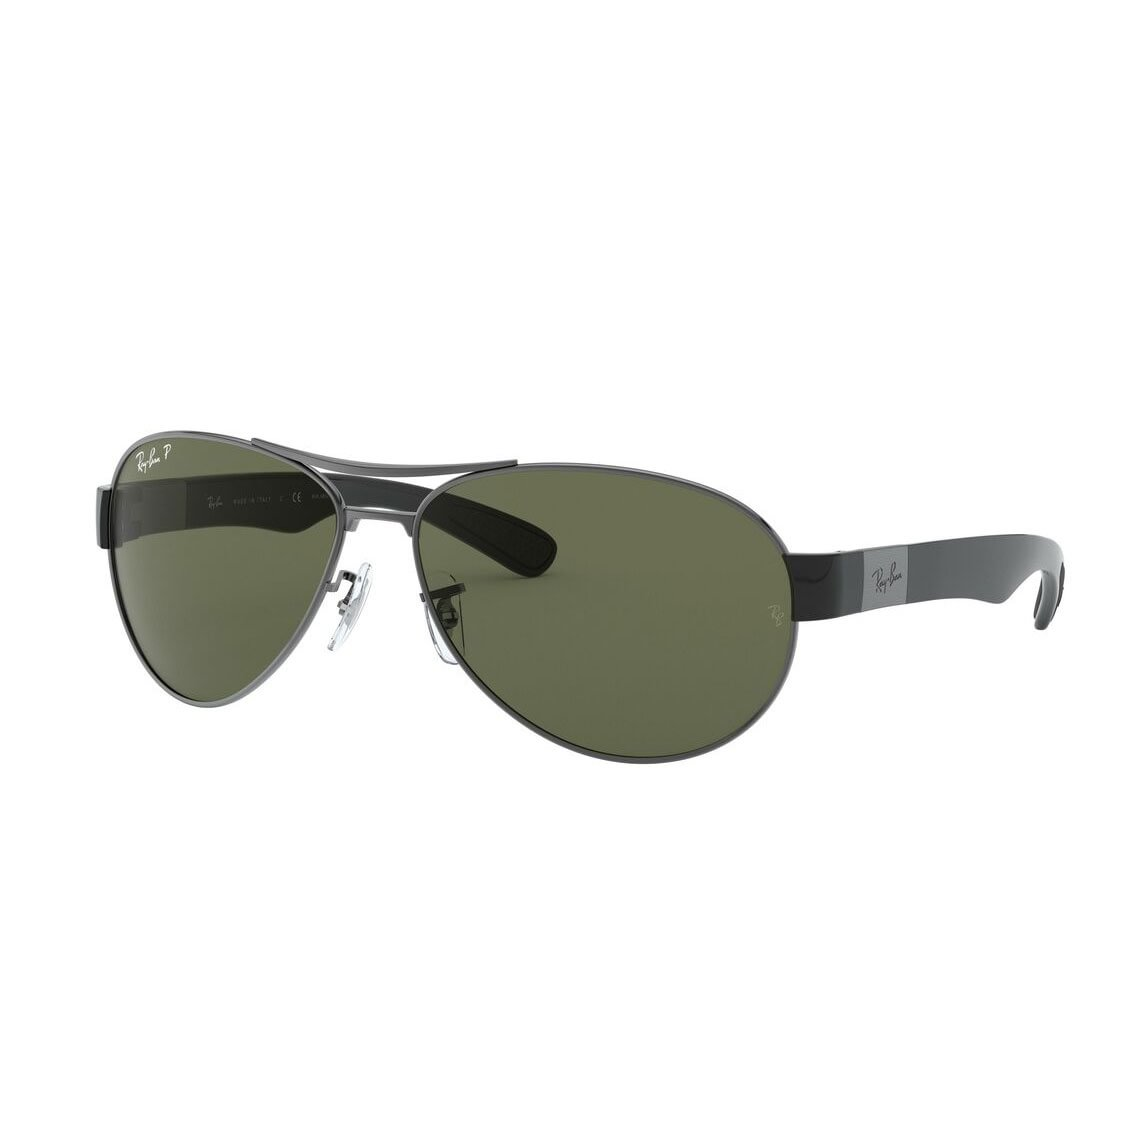 Ray-Ban RB3509 004/9A 63